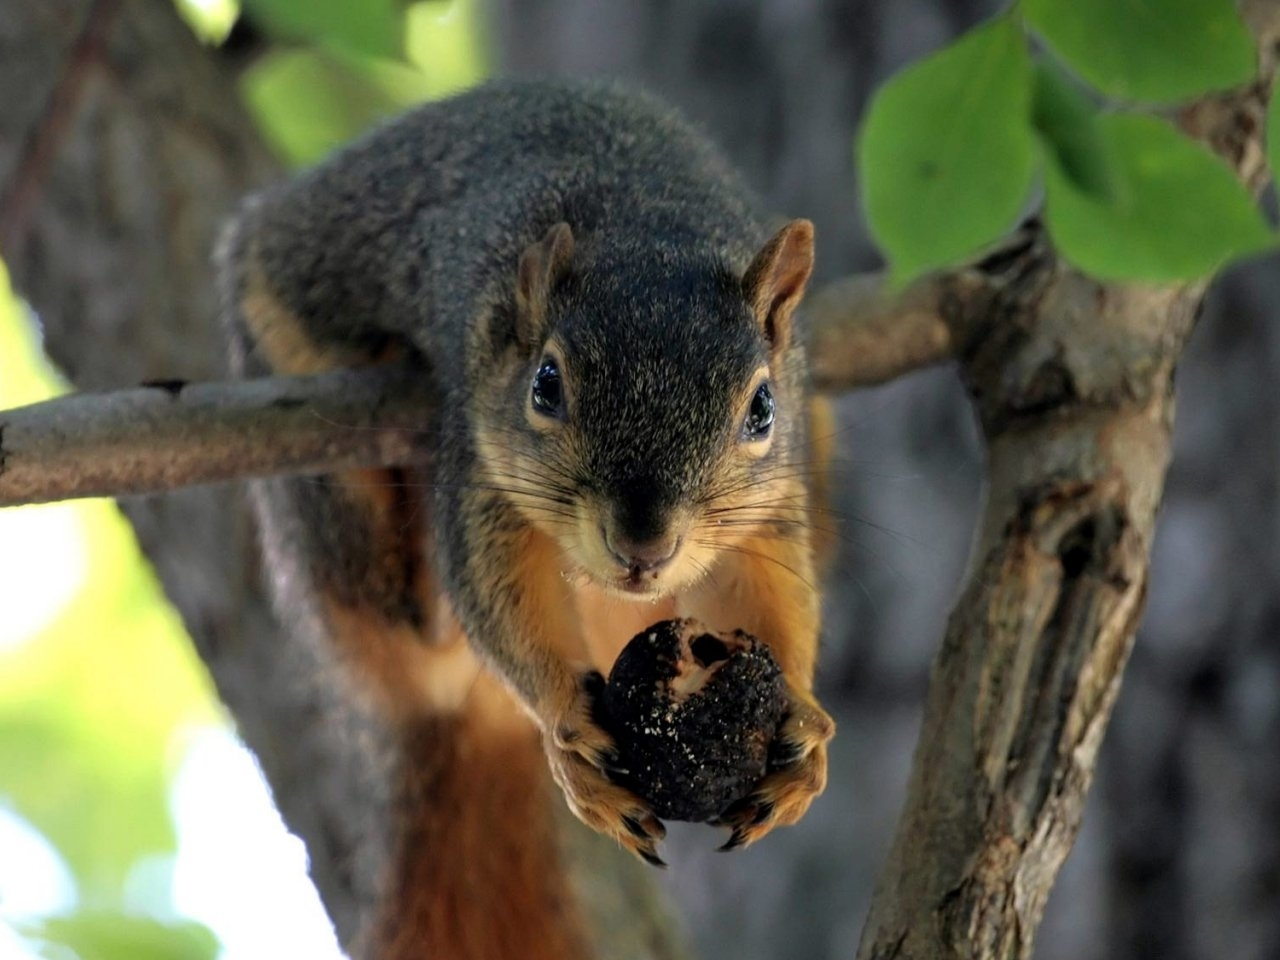 47299 download wallpaper Animals, Squirrel screensavers and pictures for free